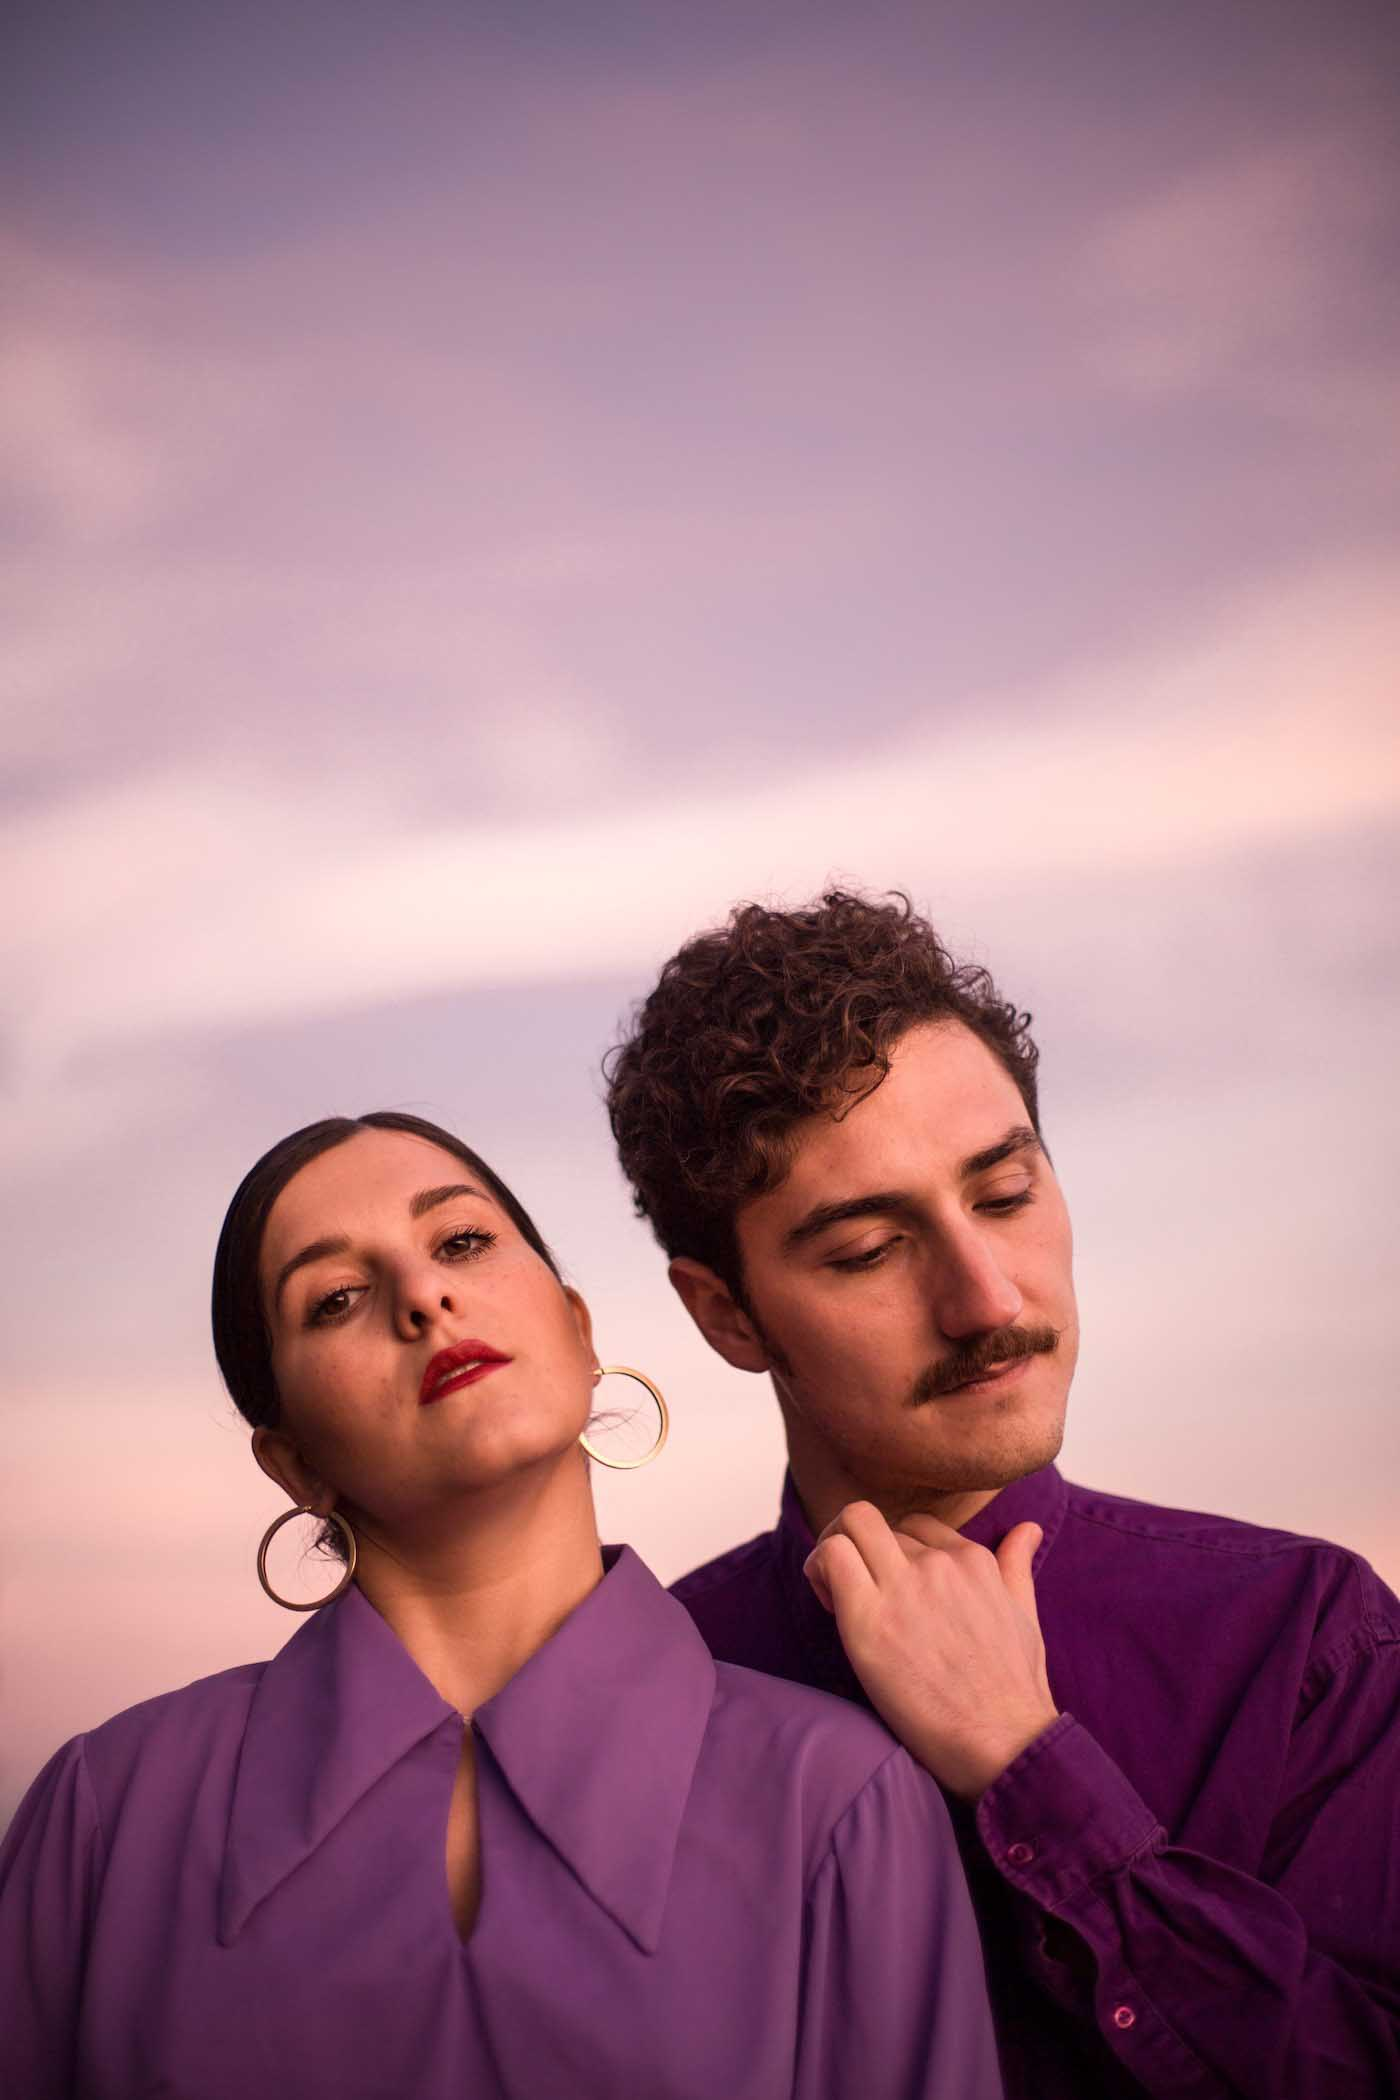 Close-up portrait of singer and guitarist duo, M w S, wearing purple shirts, against a pink and orange sky at sunrise at Hampstead Heath, London, UK.